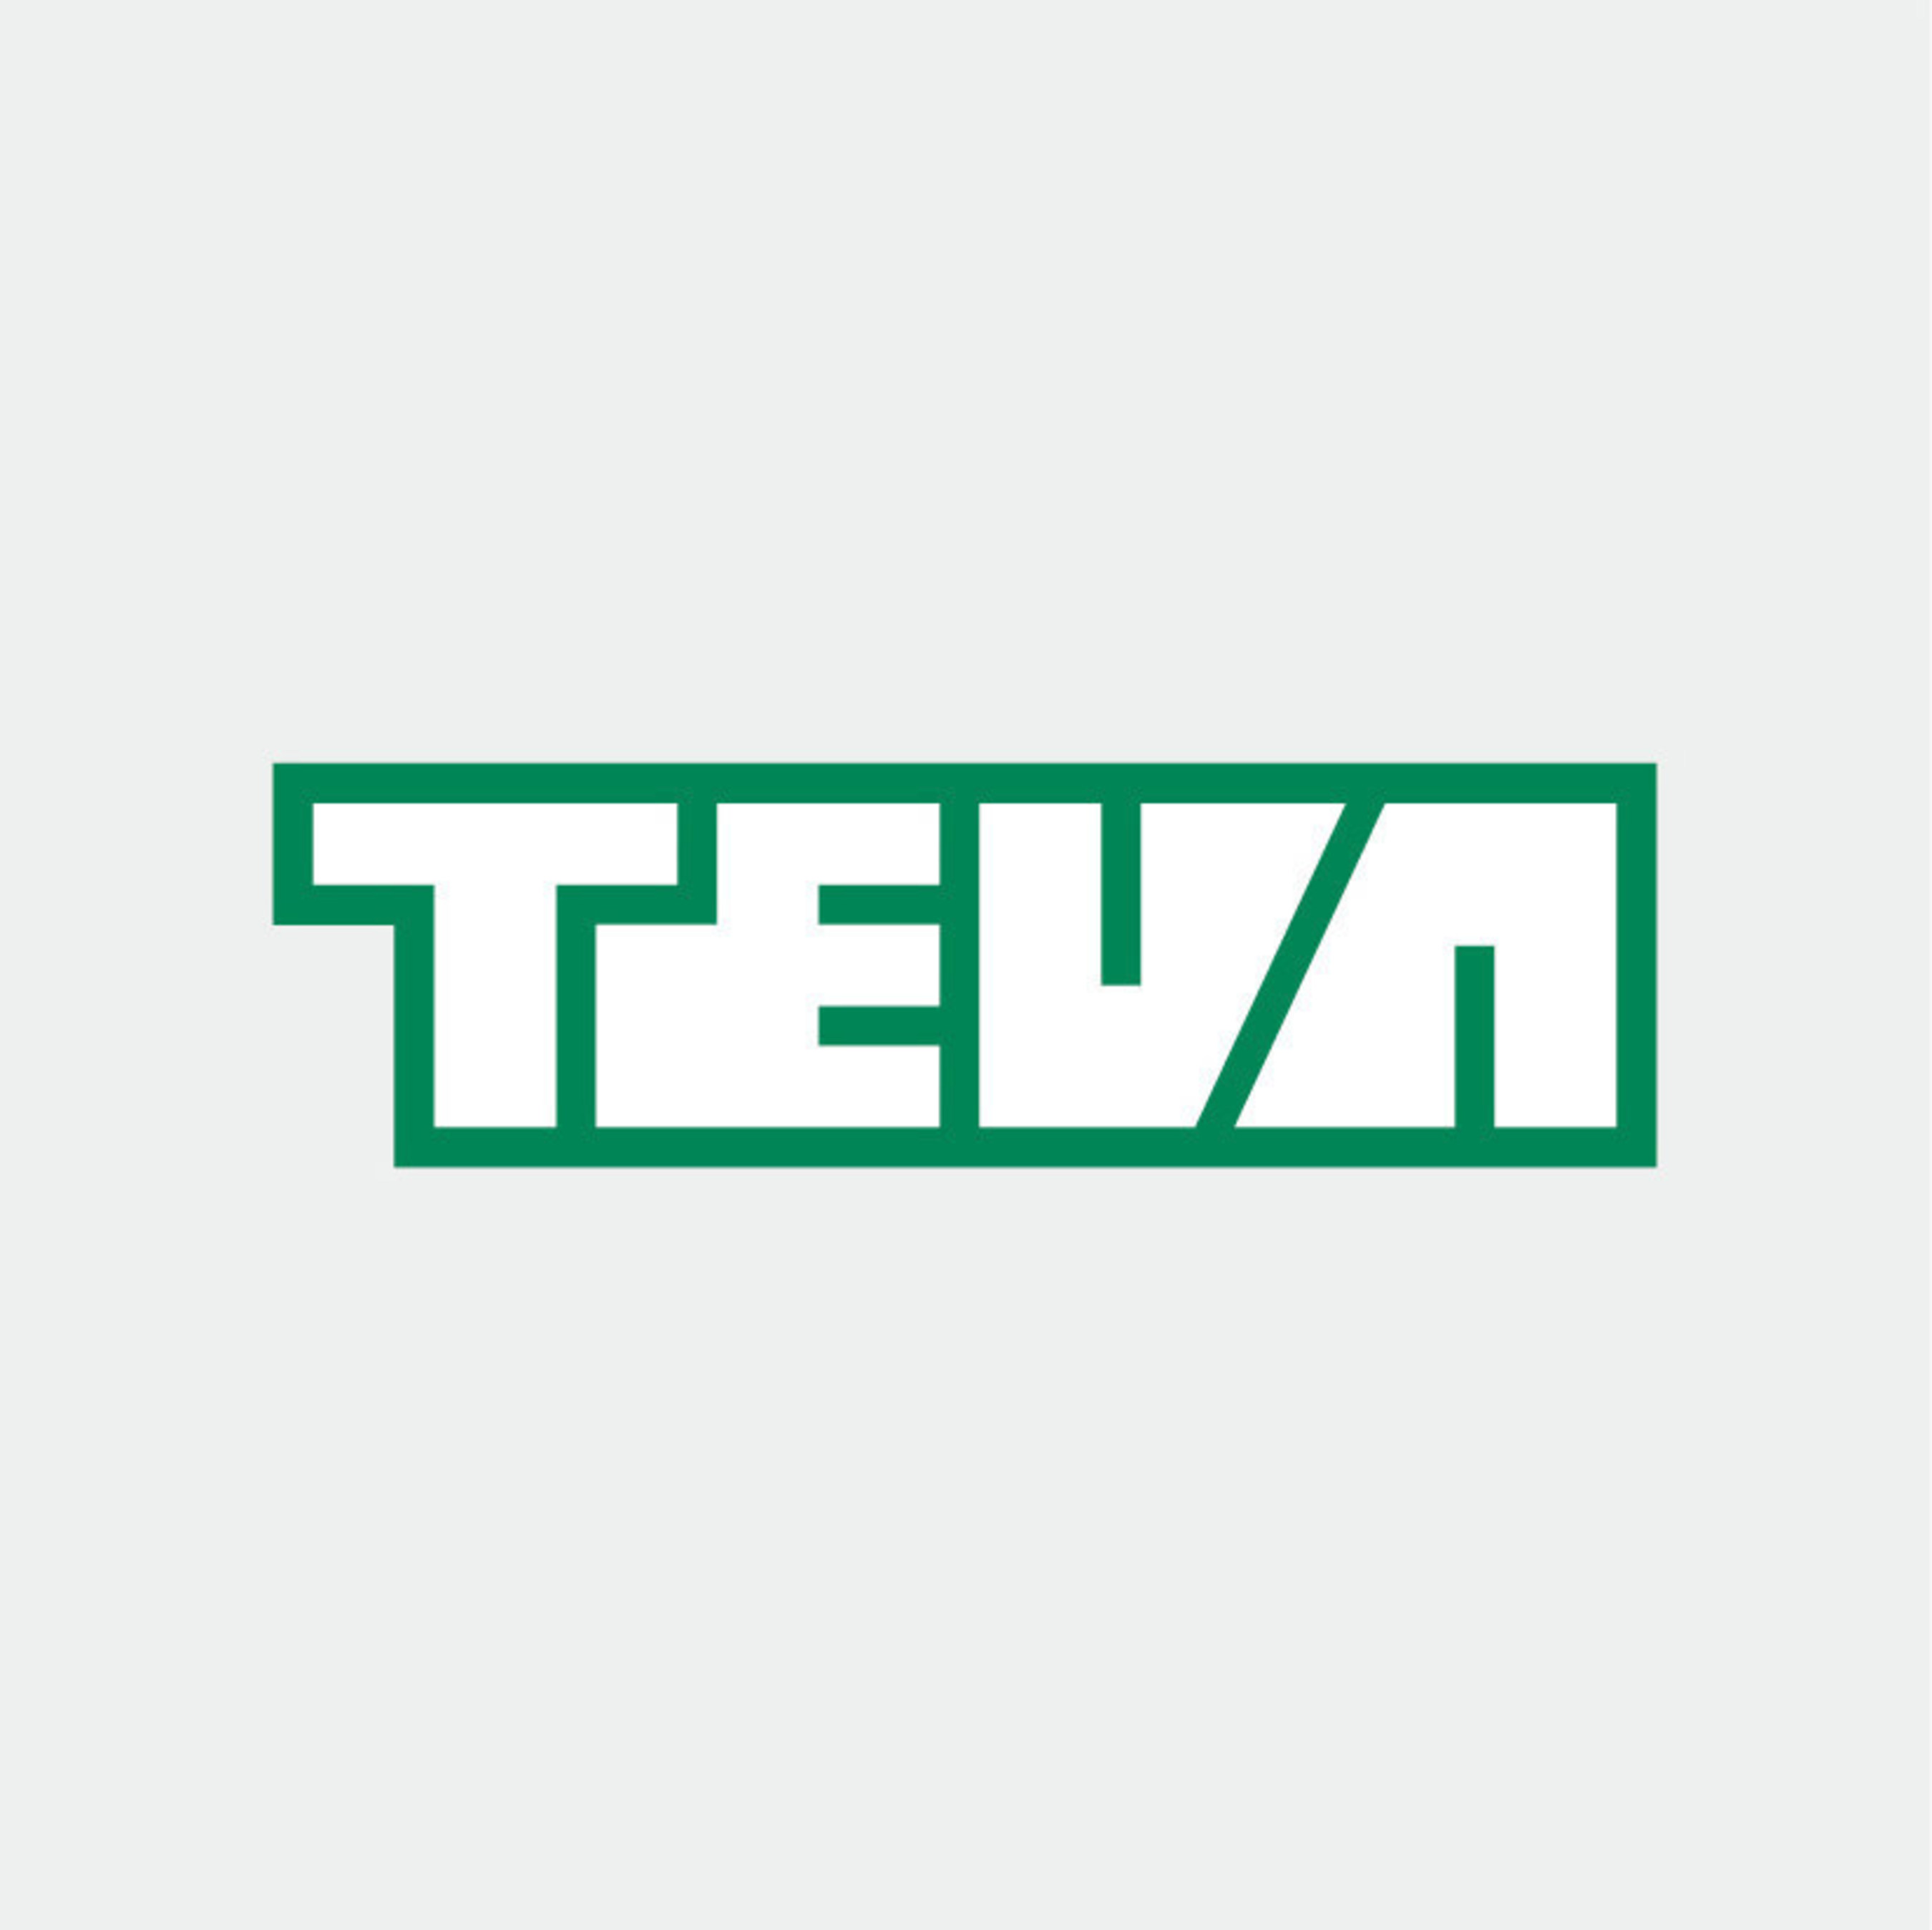 Teva Pharmaceuticals and IBM Partner to Develop e-Health Solutions on the Watson Health Cloud